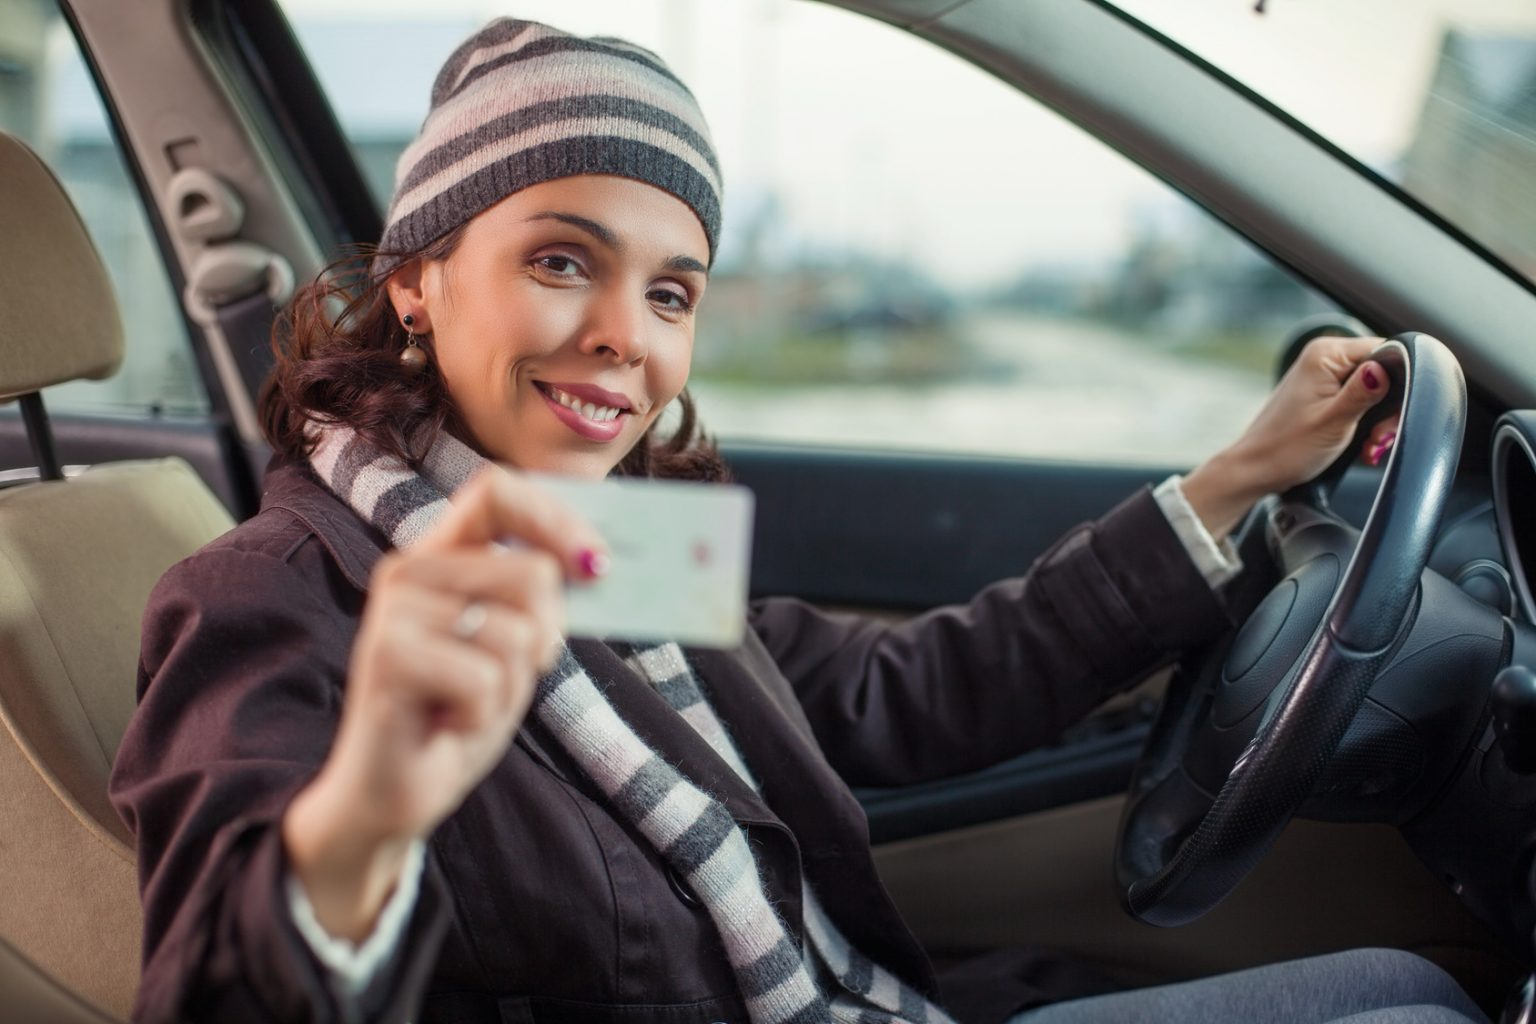 How to Get a Driver's License: Everything You Need to Know about Rules and Regulations